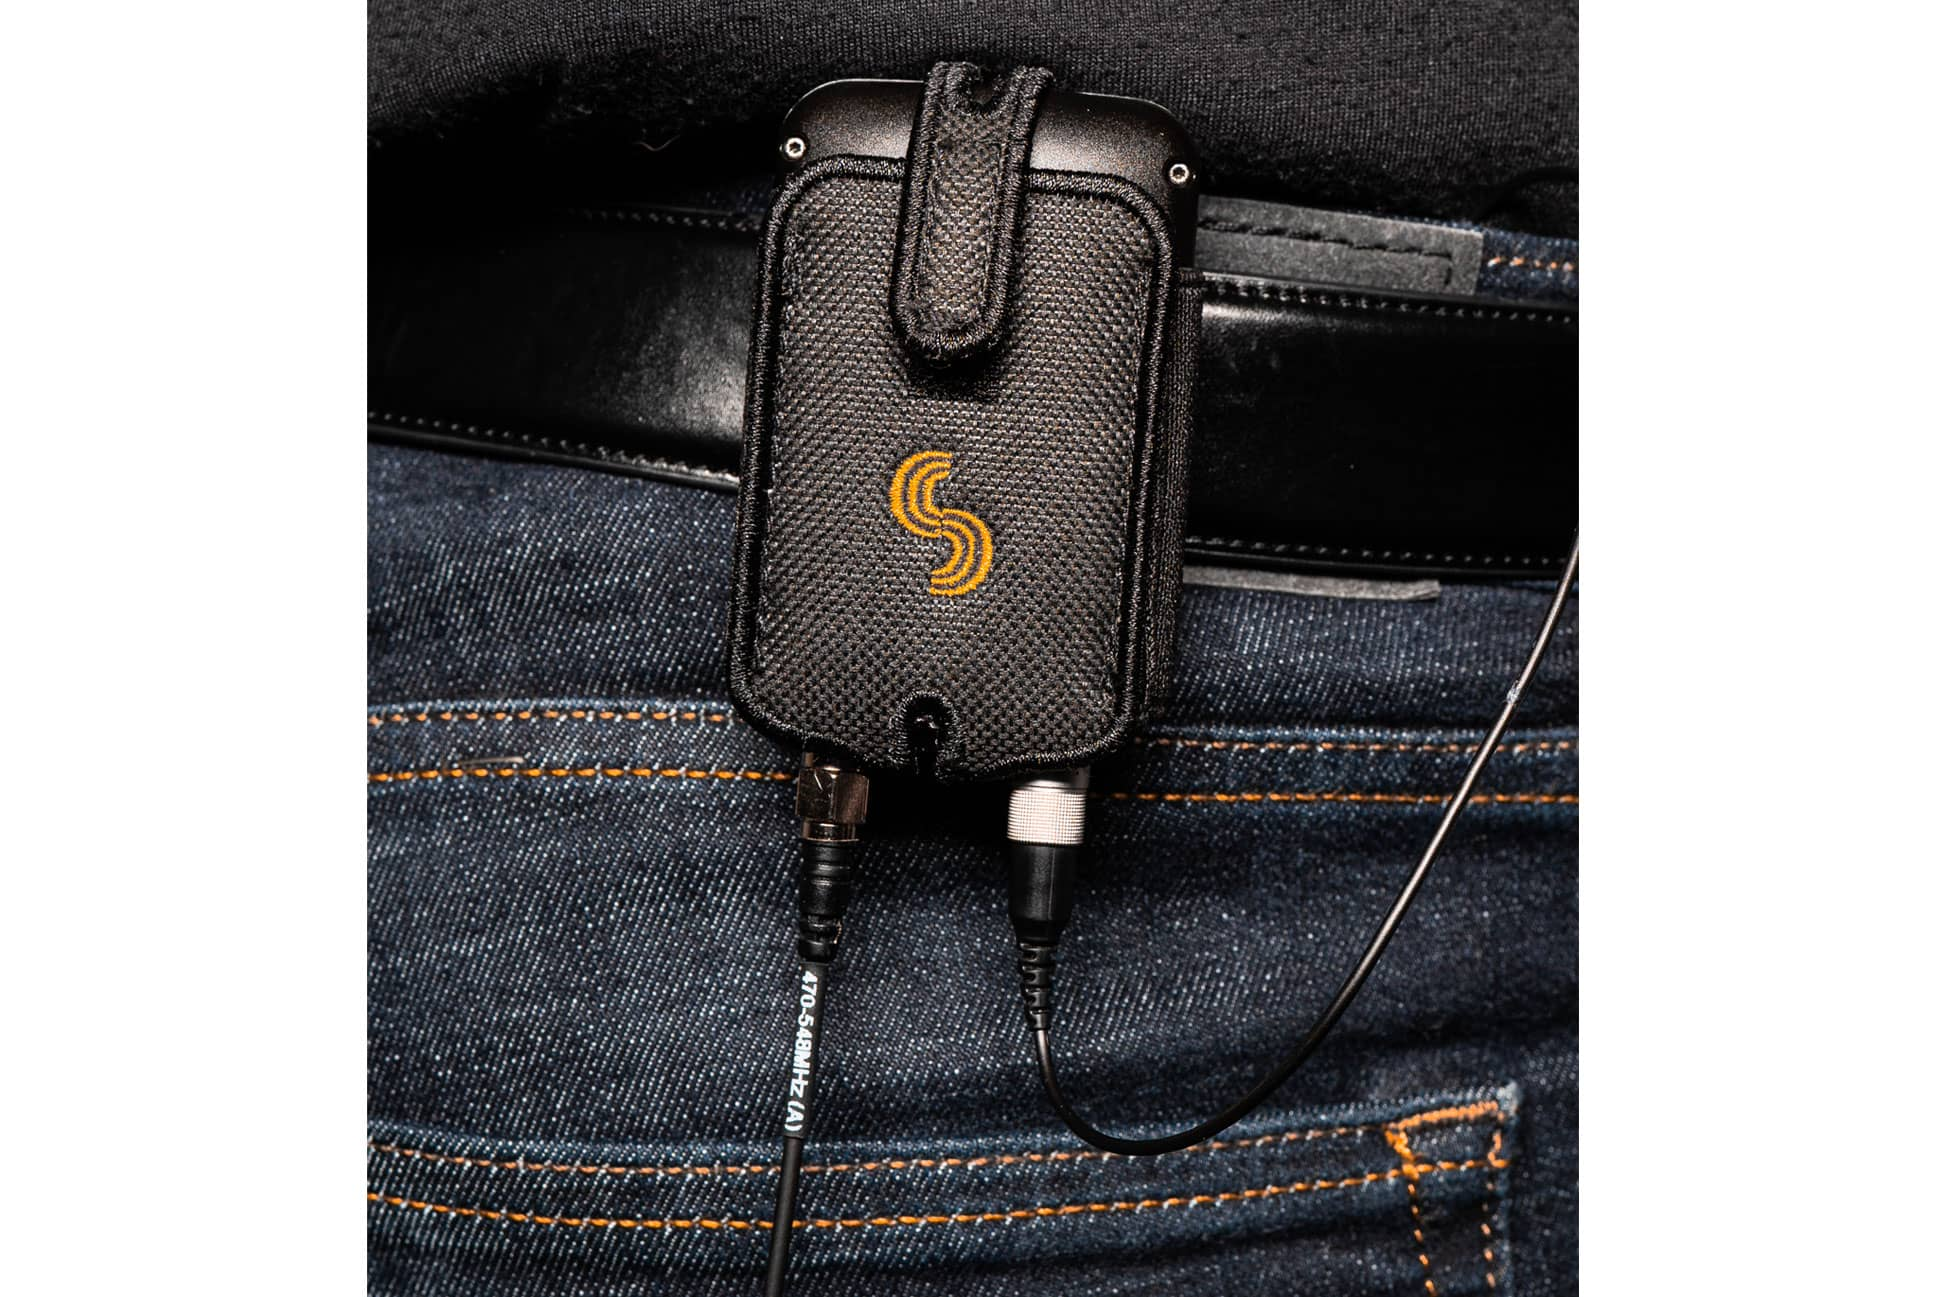 Holster of the A20-TX-Mini